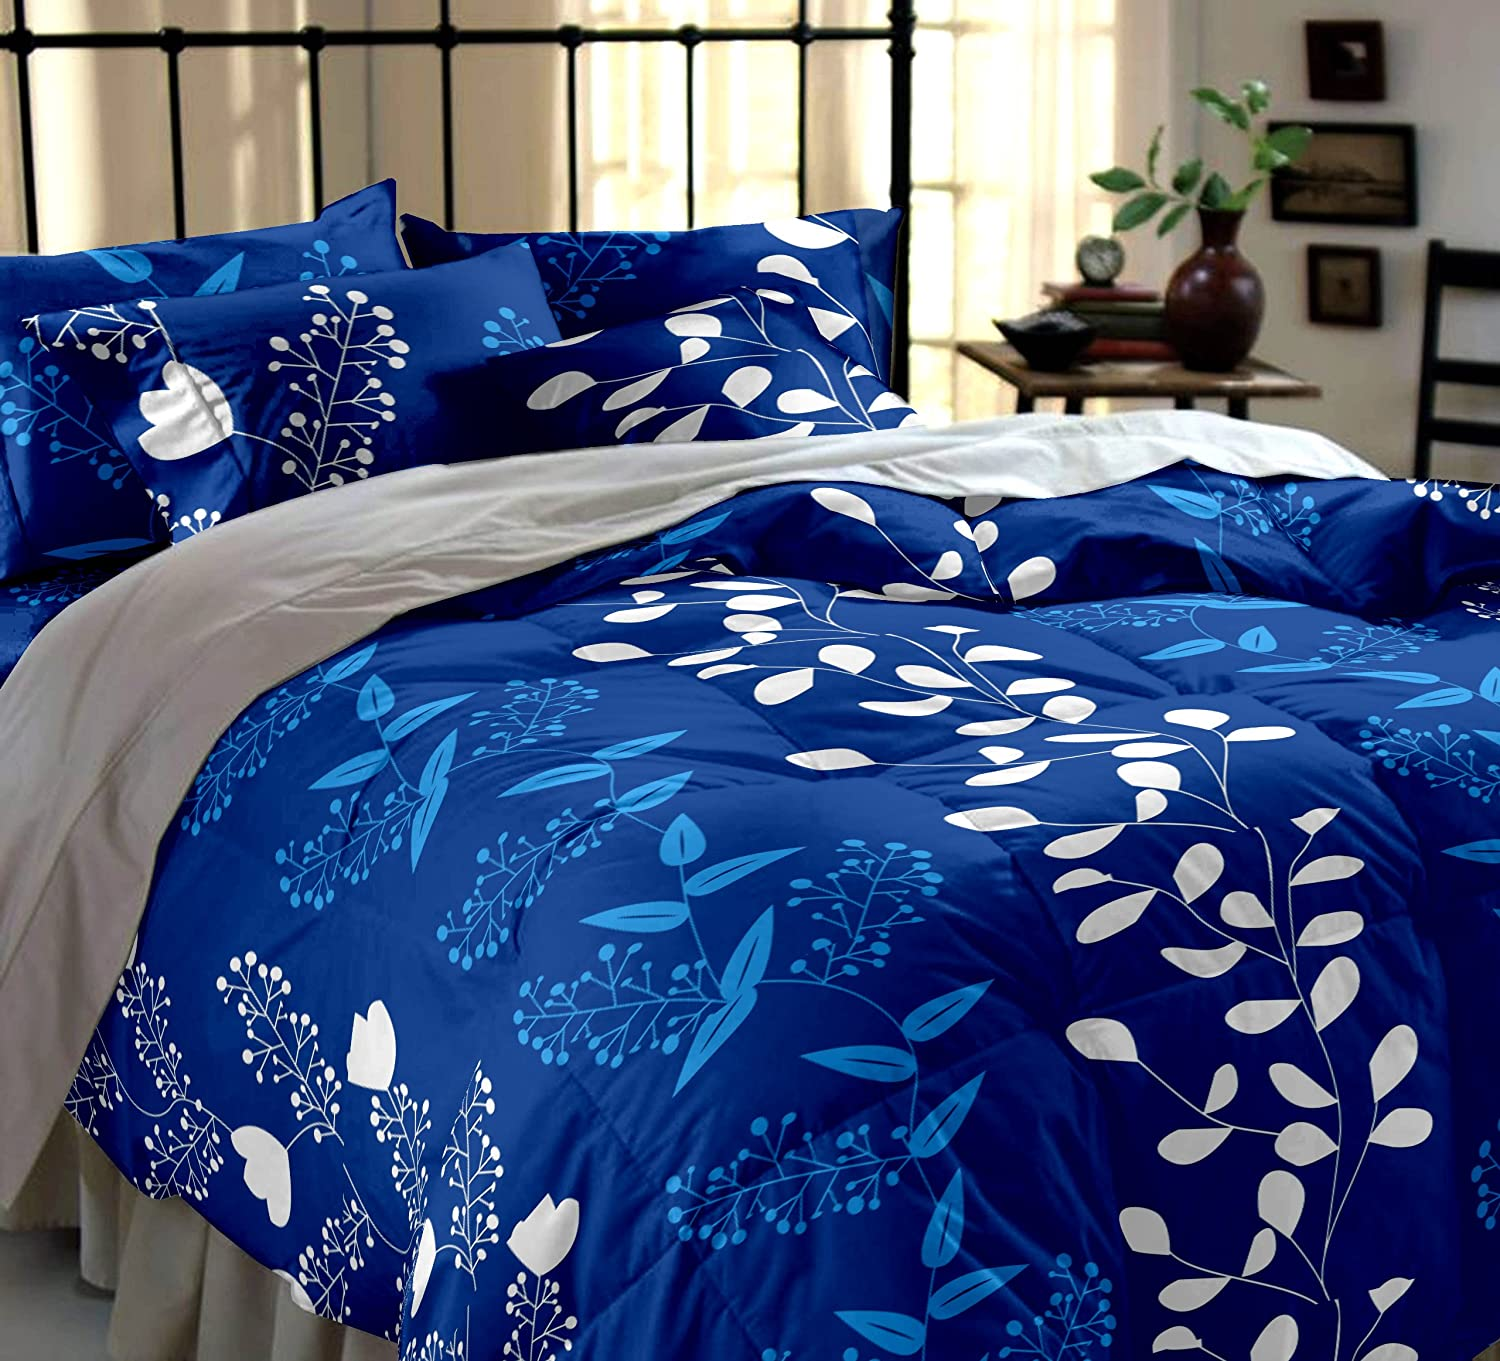 Blue Bed Sets at Home and Interior Design Ideas